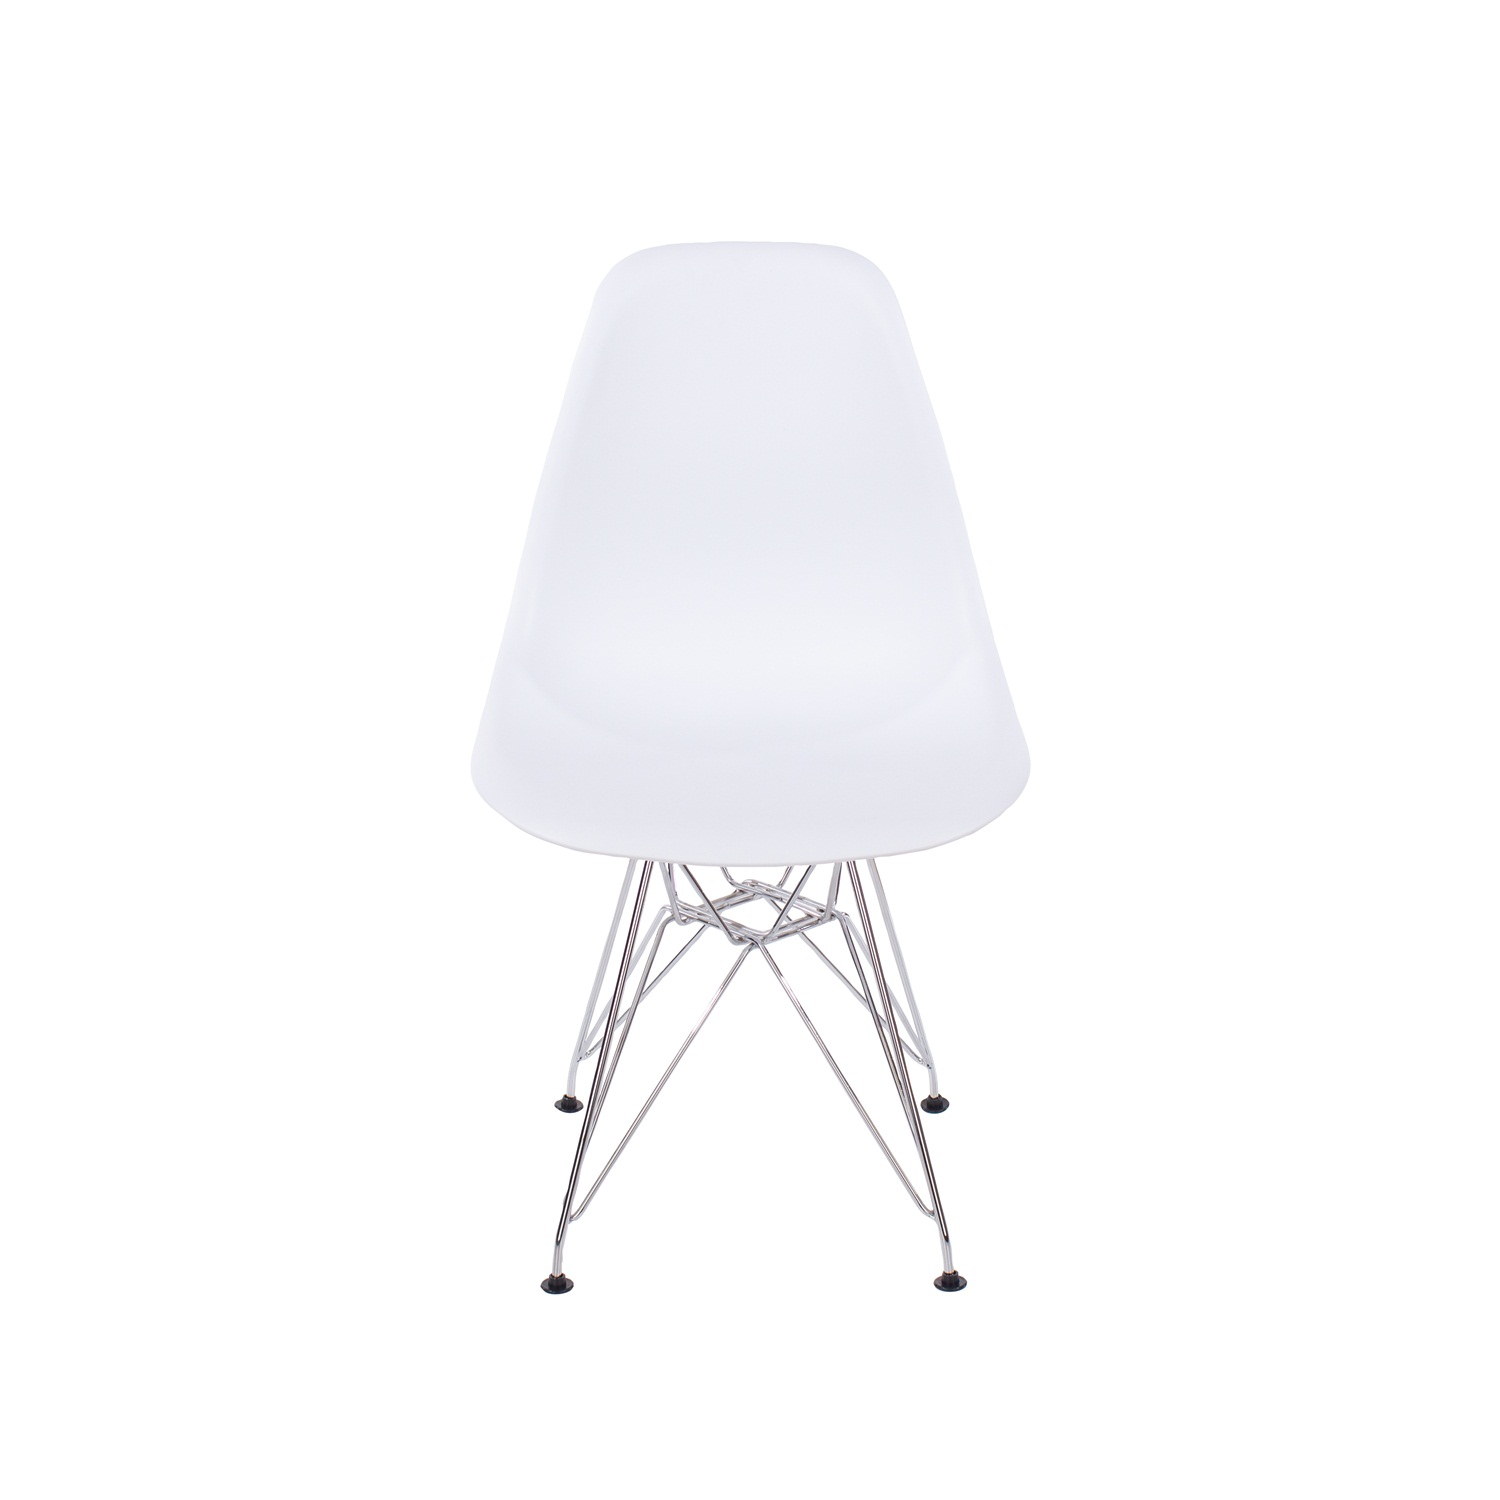 white plastic chair with chrome legs (order in pairs)